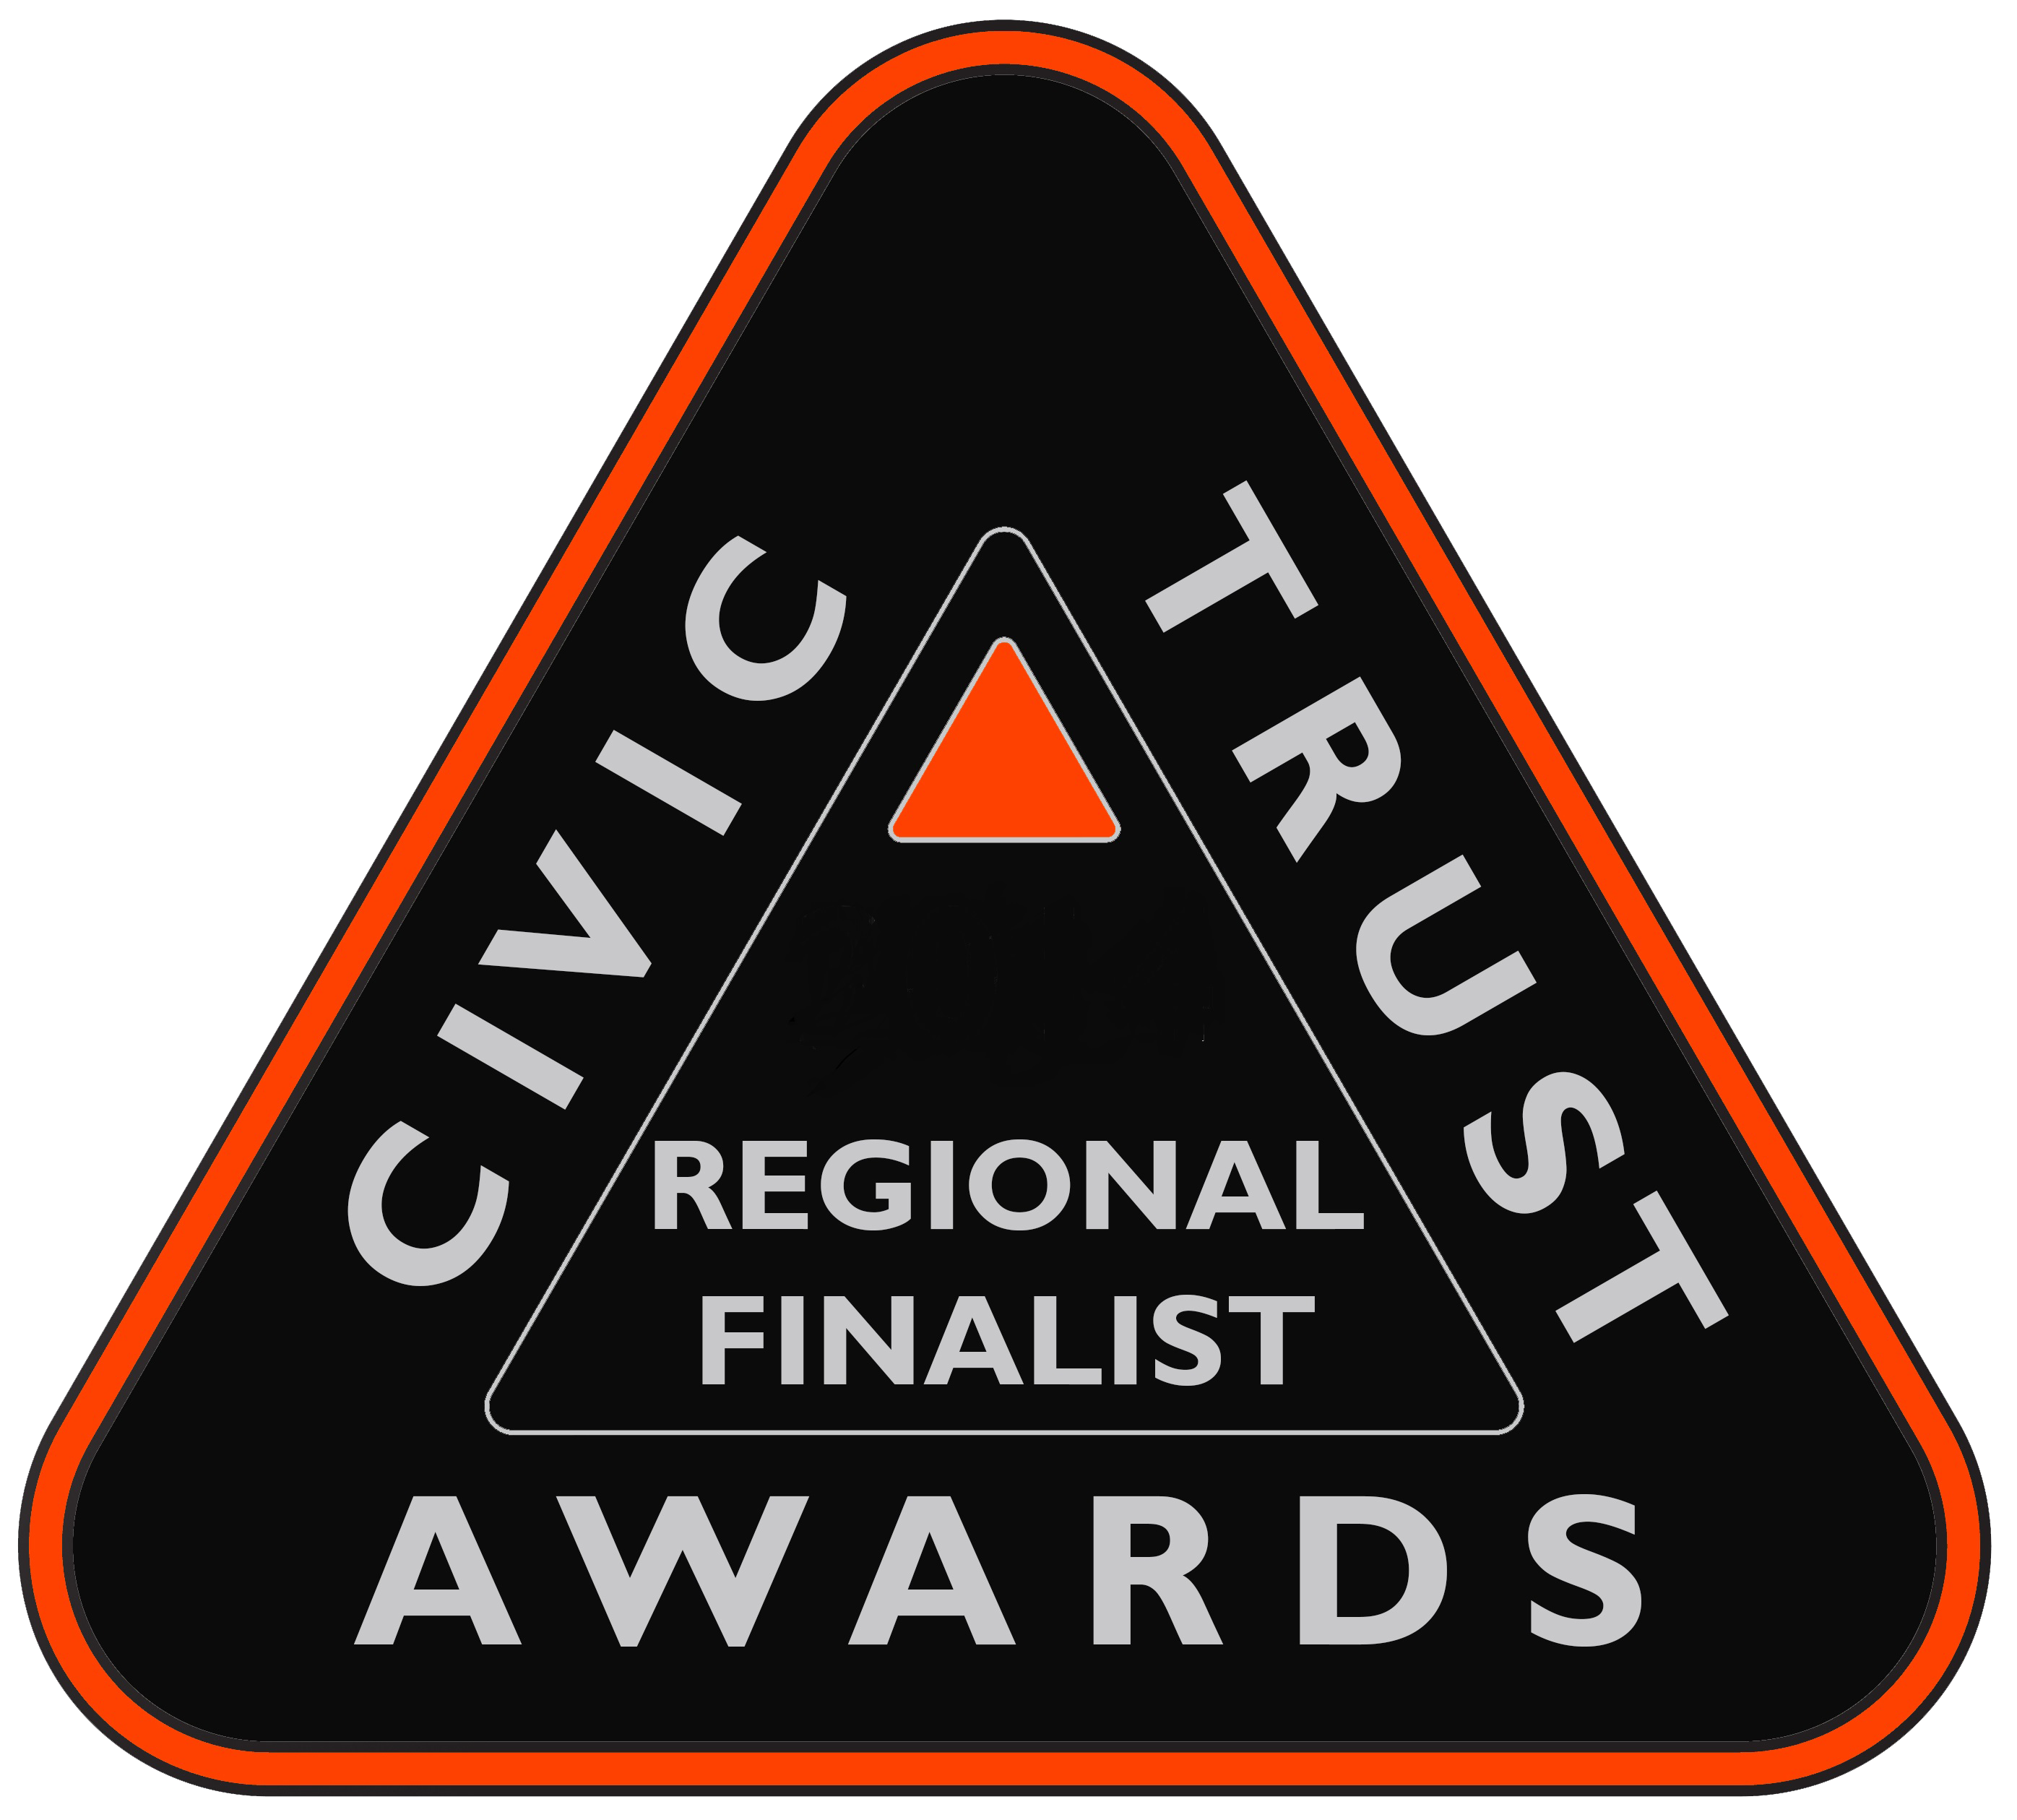 Civic-Trusts